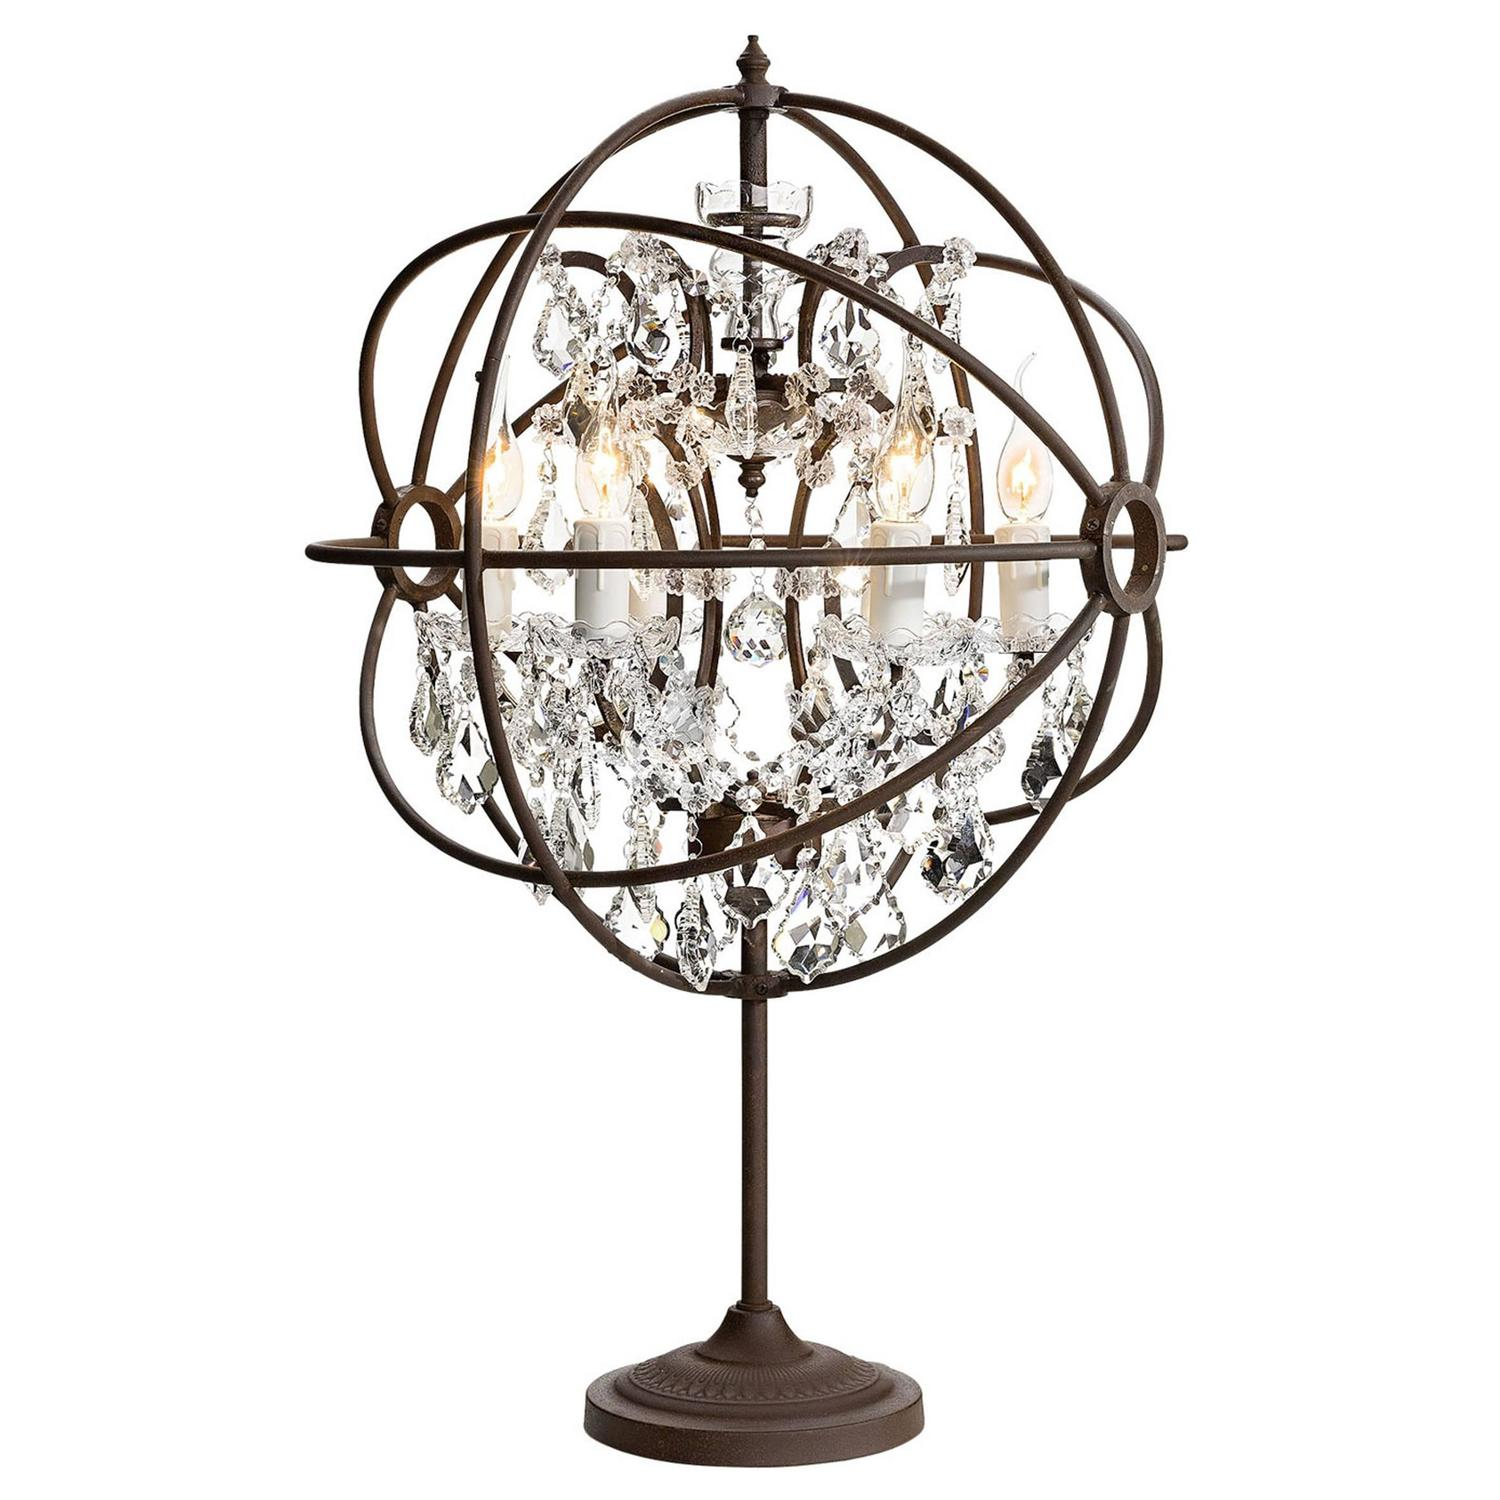 crystal antique table lamp iron and crystal for sale at. Black Bedroom Furniture Sets. Home Design Ideas